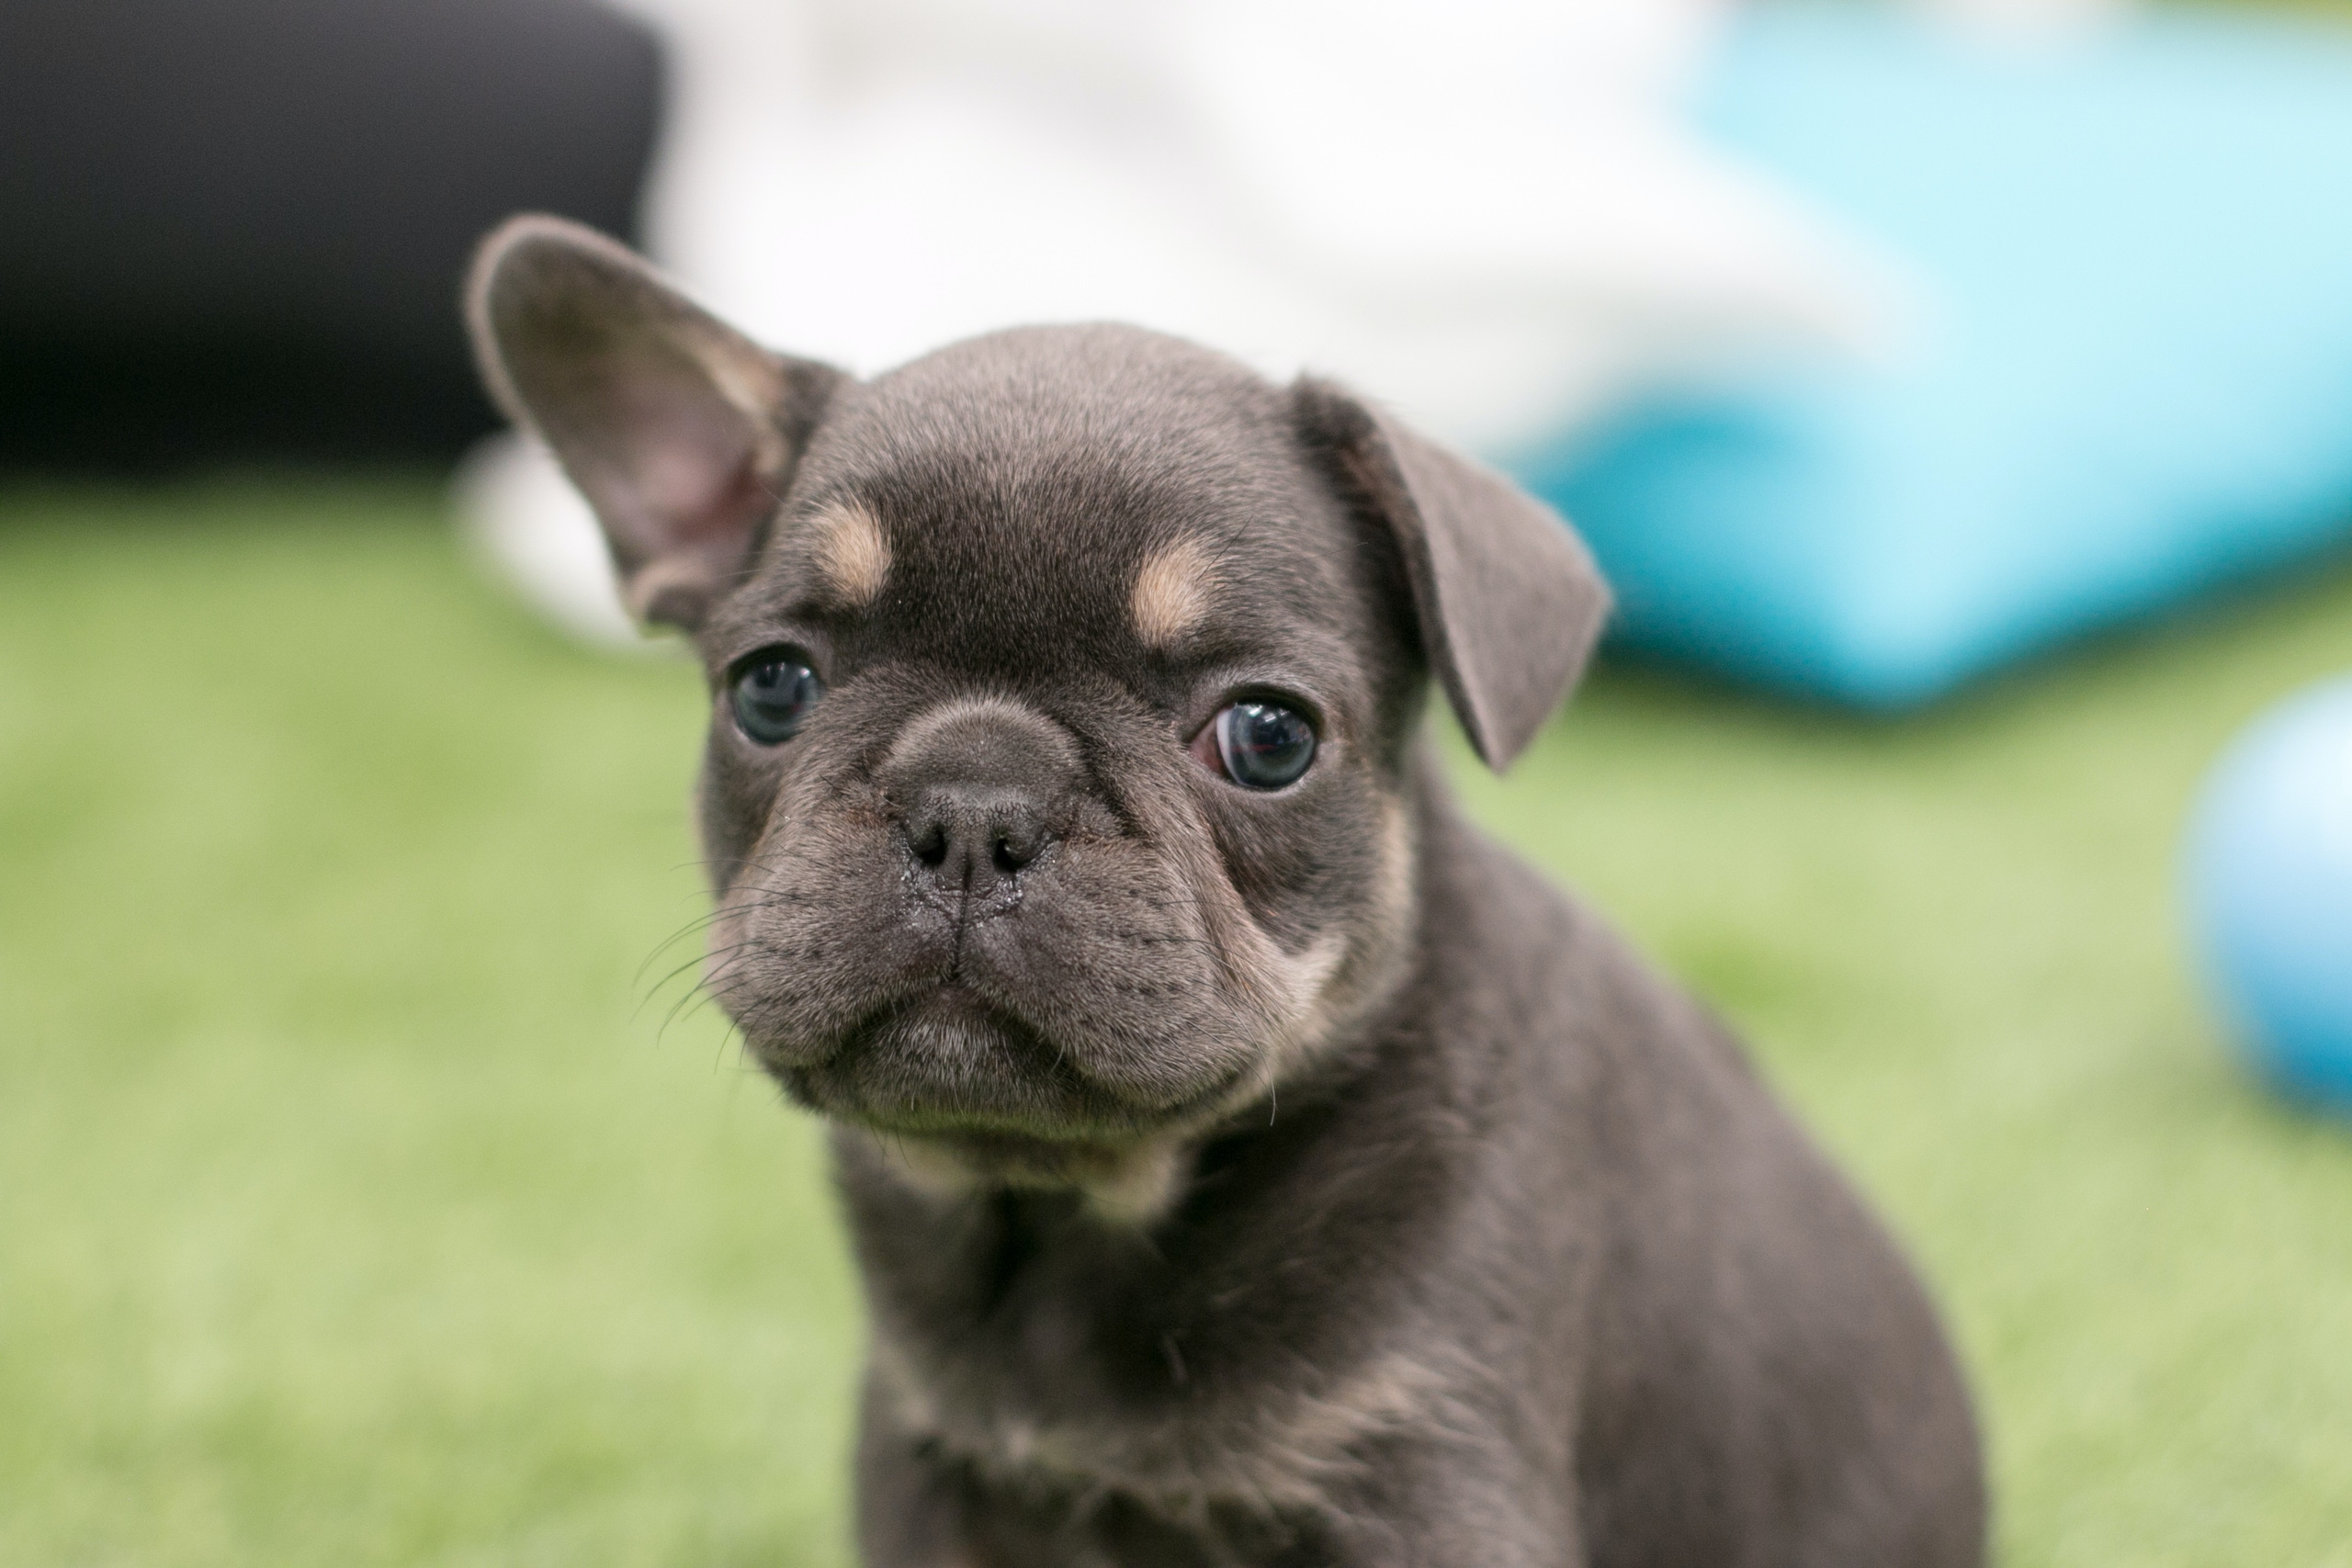 Brachycephalic dogs what to look for 202001 PIW Intituit 6889